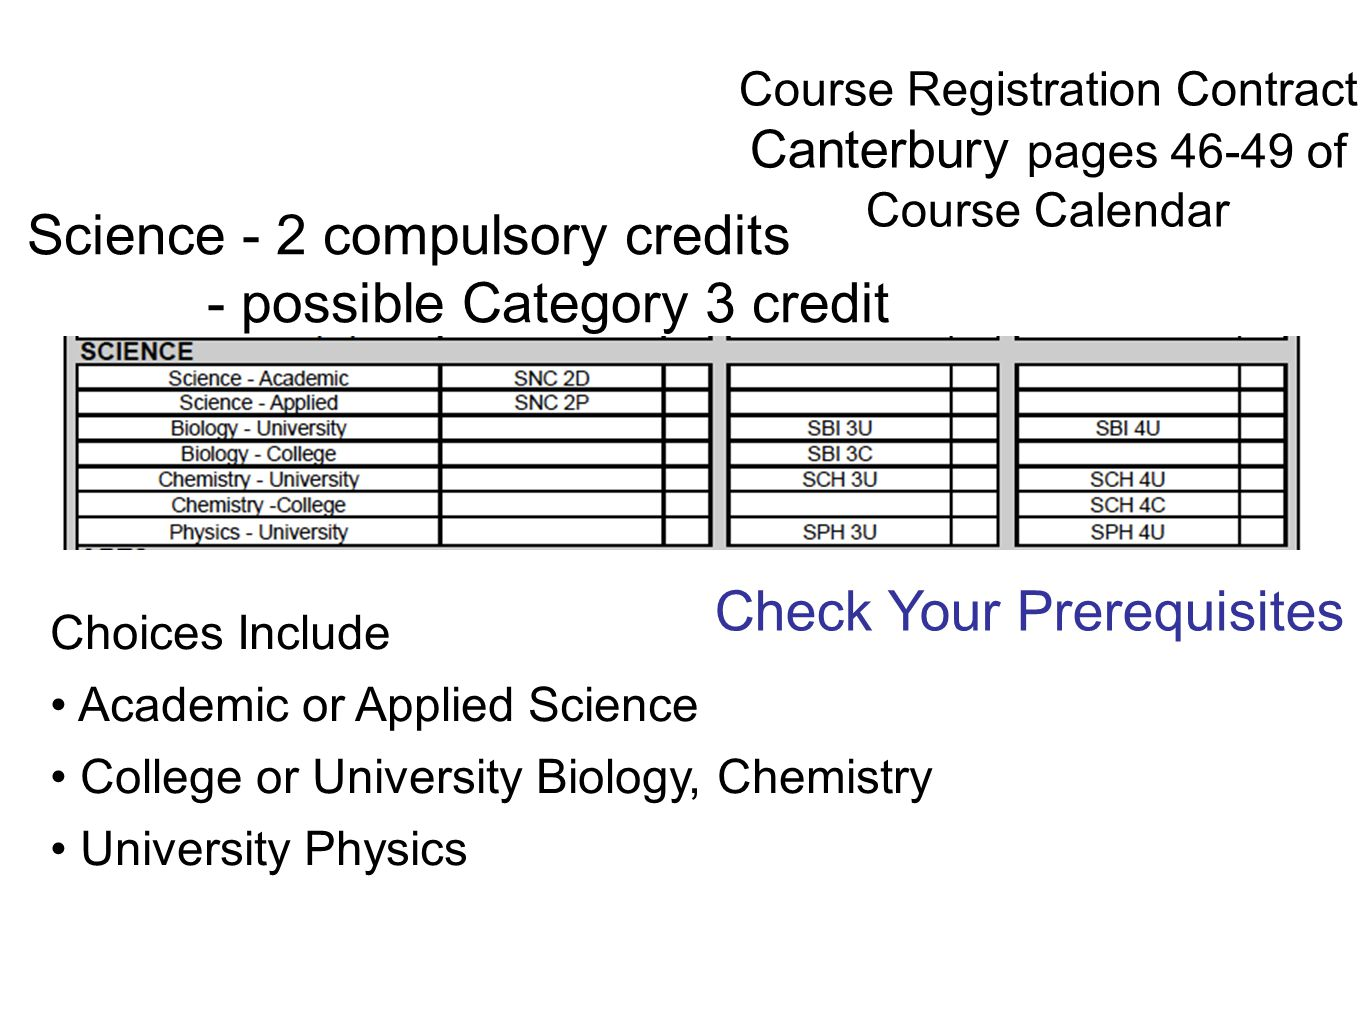 Course Registration Contract Canterbury pages 46-49 of Course Calendar Choices Include Academic or Applied Science College or University Biology, Chemistry University Physics Science - 2 compulsory credits - possible Category 3 credit Check Your Prerequisites